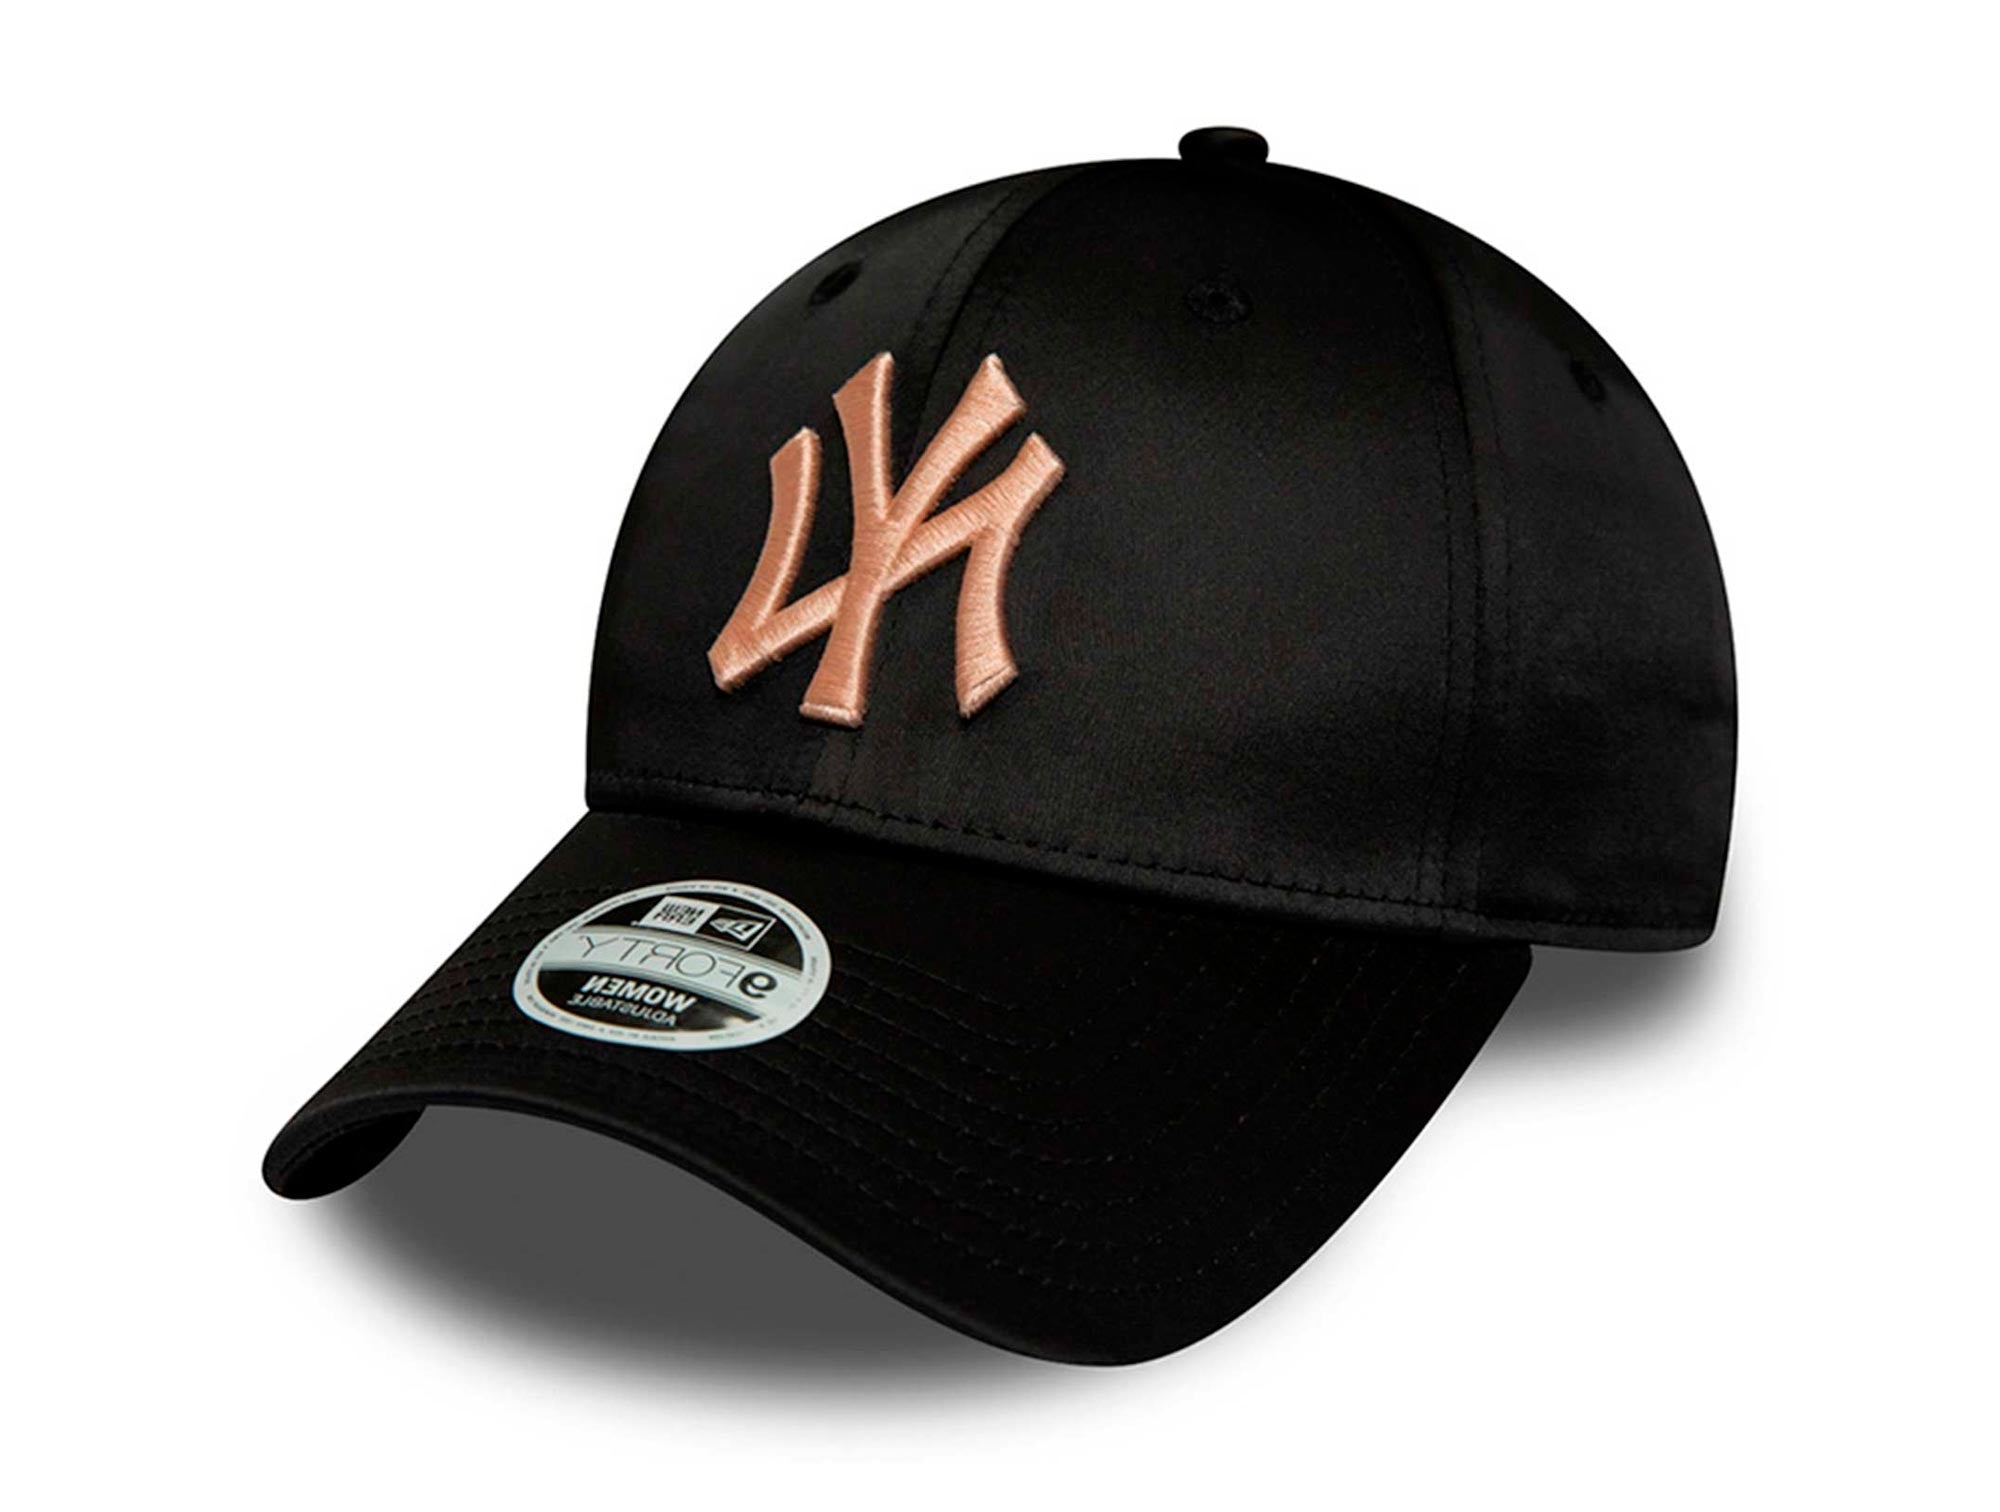 New Era Jockey New York Yankees Mujer Negro